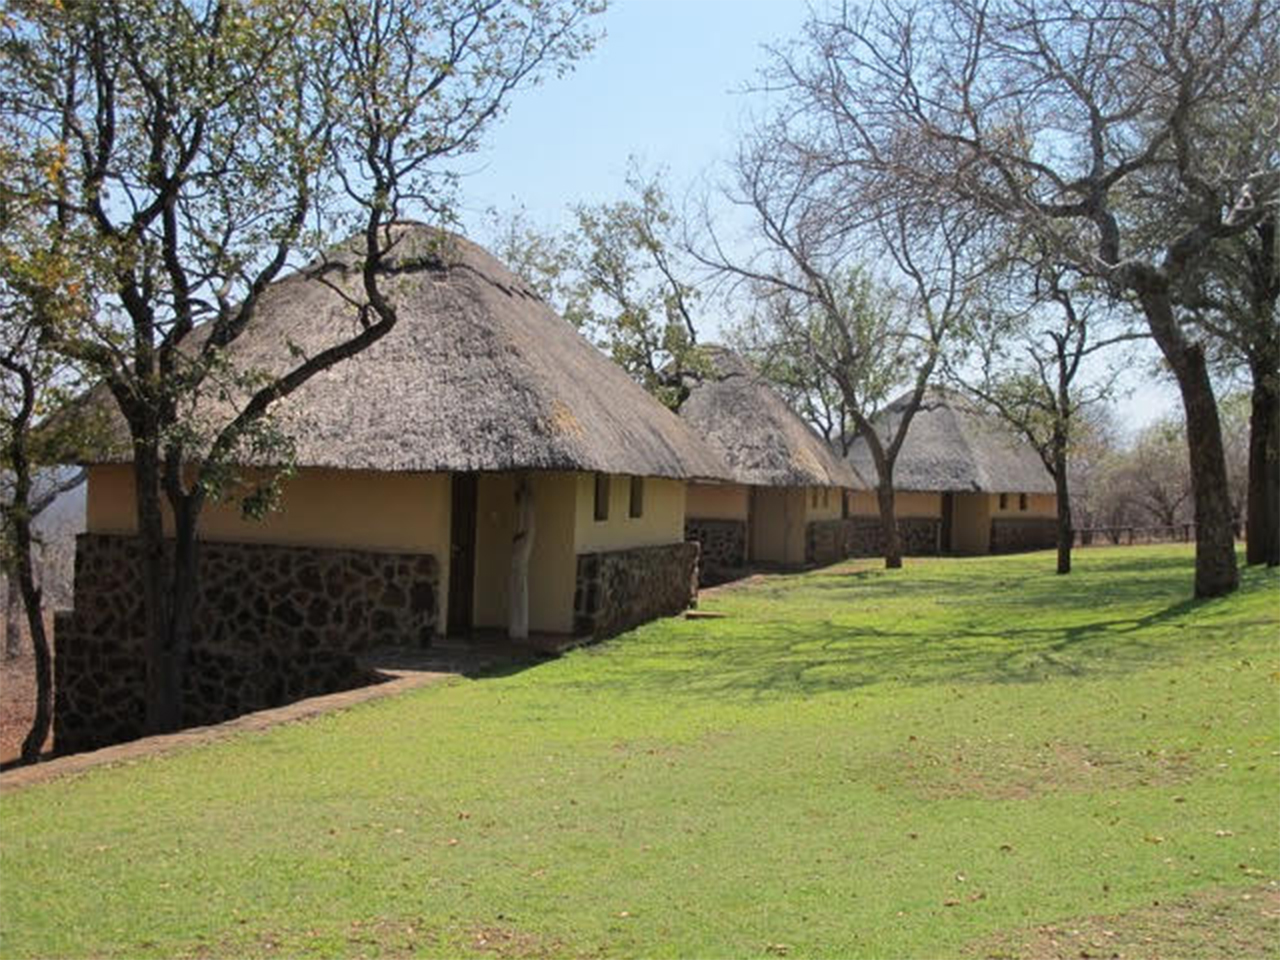 Chimalaya Camp, Mazunga Safaris, Bubye Conservation, Bubye Conservancy